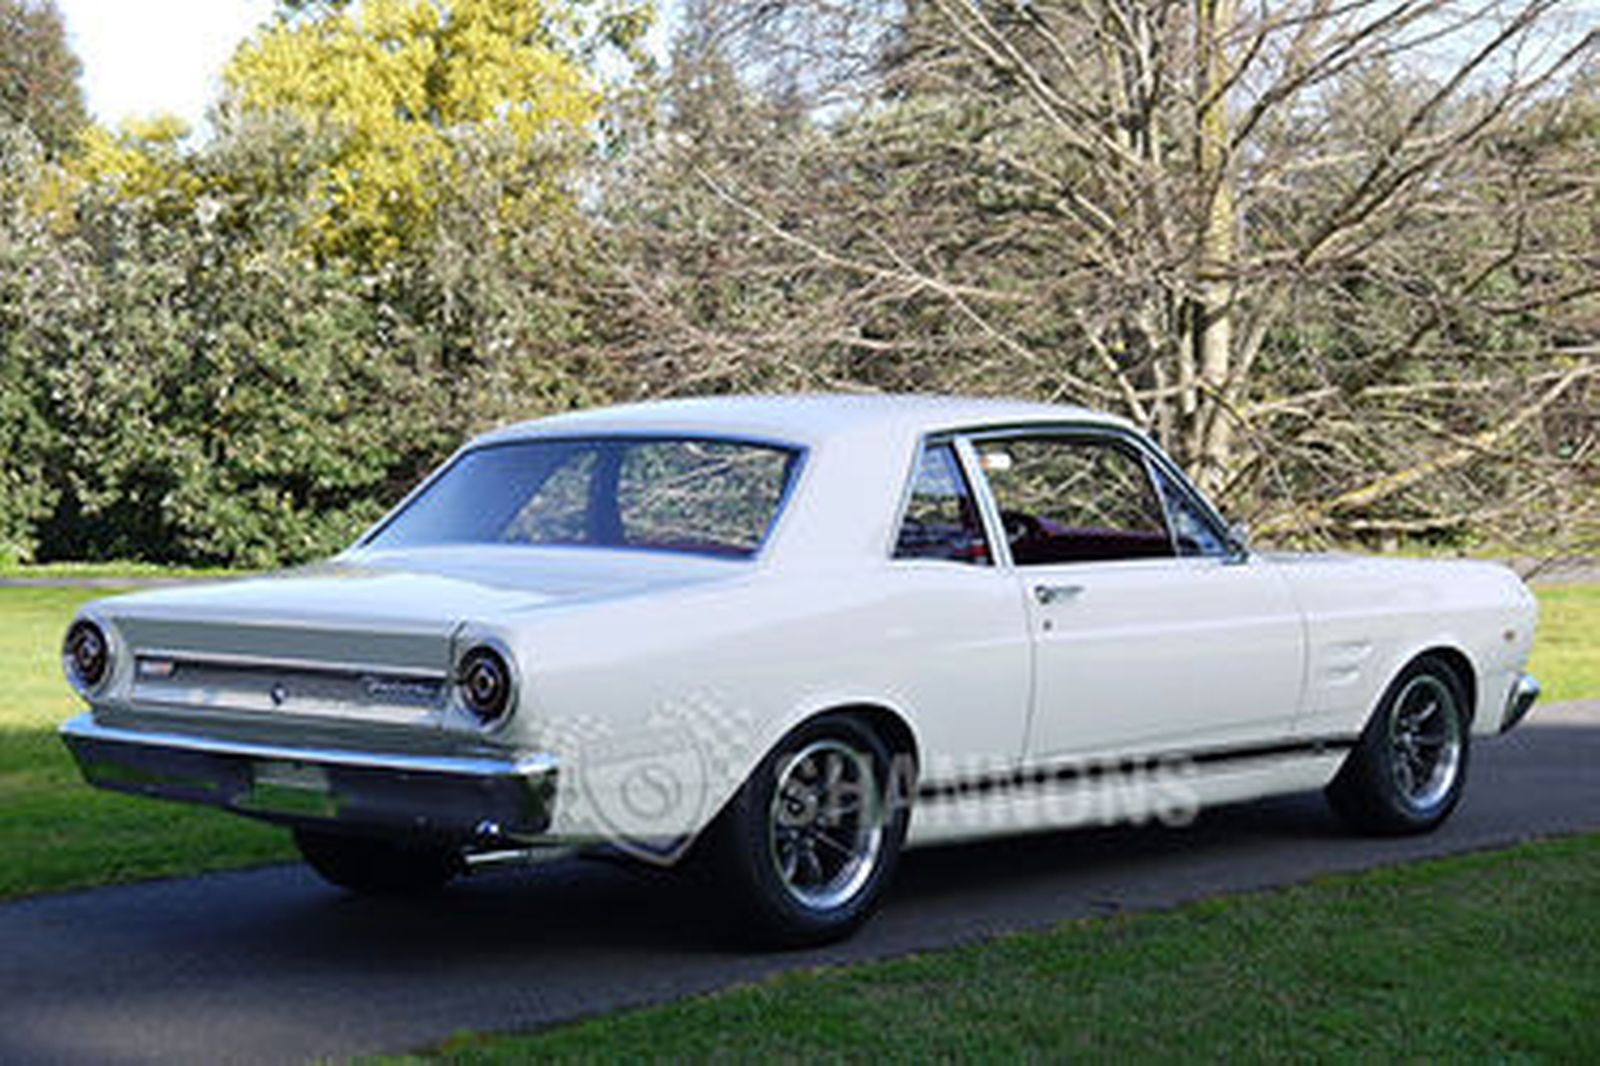 Ford Falcon Futura Sports Coupe Lhd Auctions Lot 16